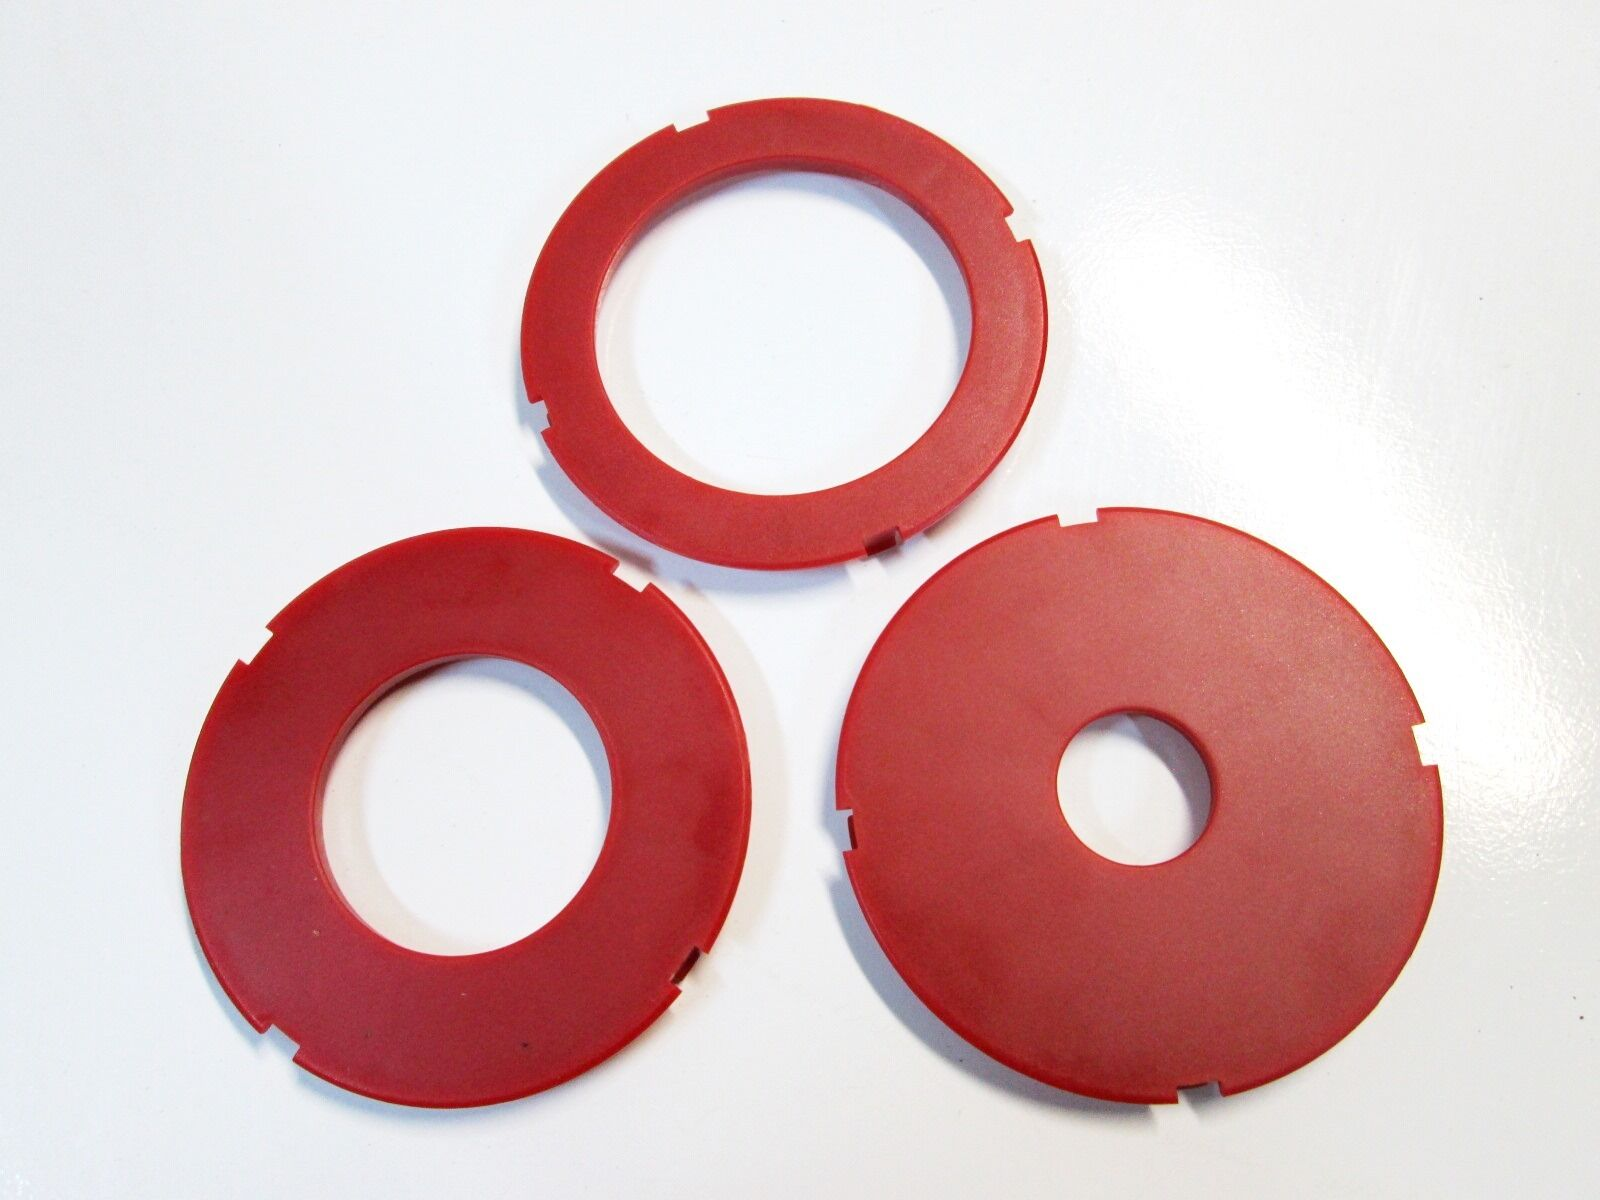 Router table insert ring set 97mm od fits sears craftsman ryobi 1 of 7free shipping keyboard keysfo